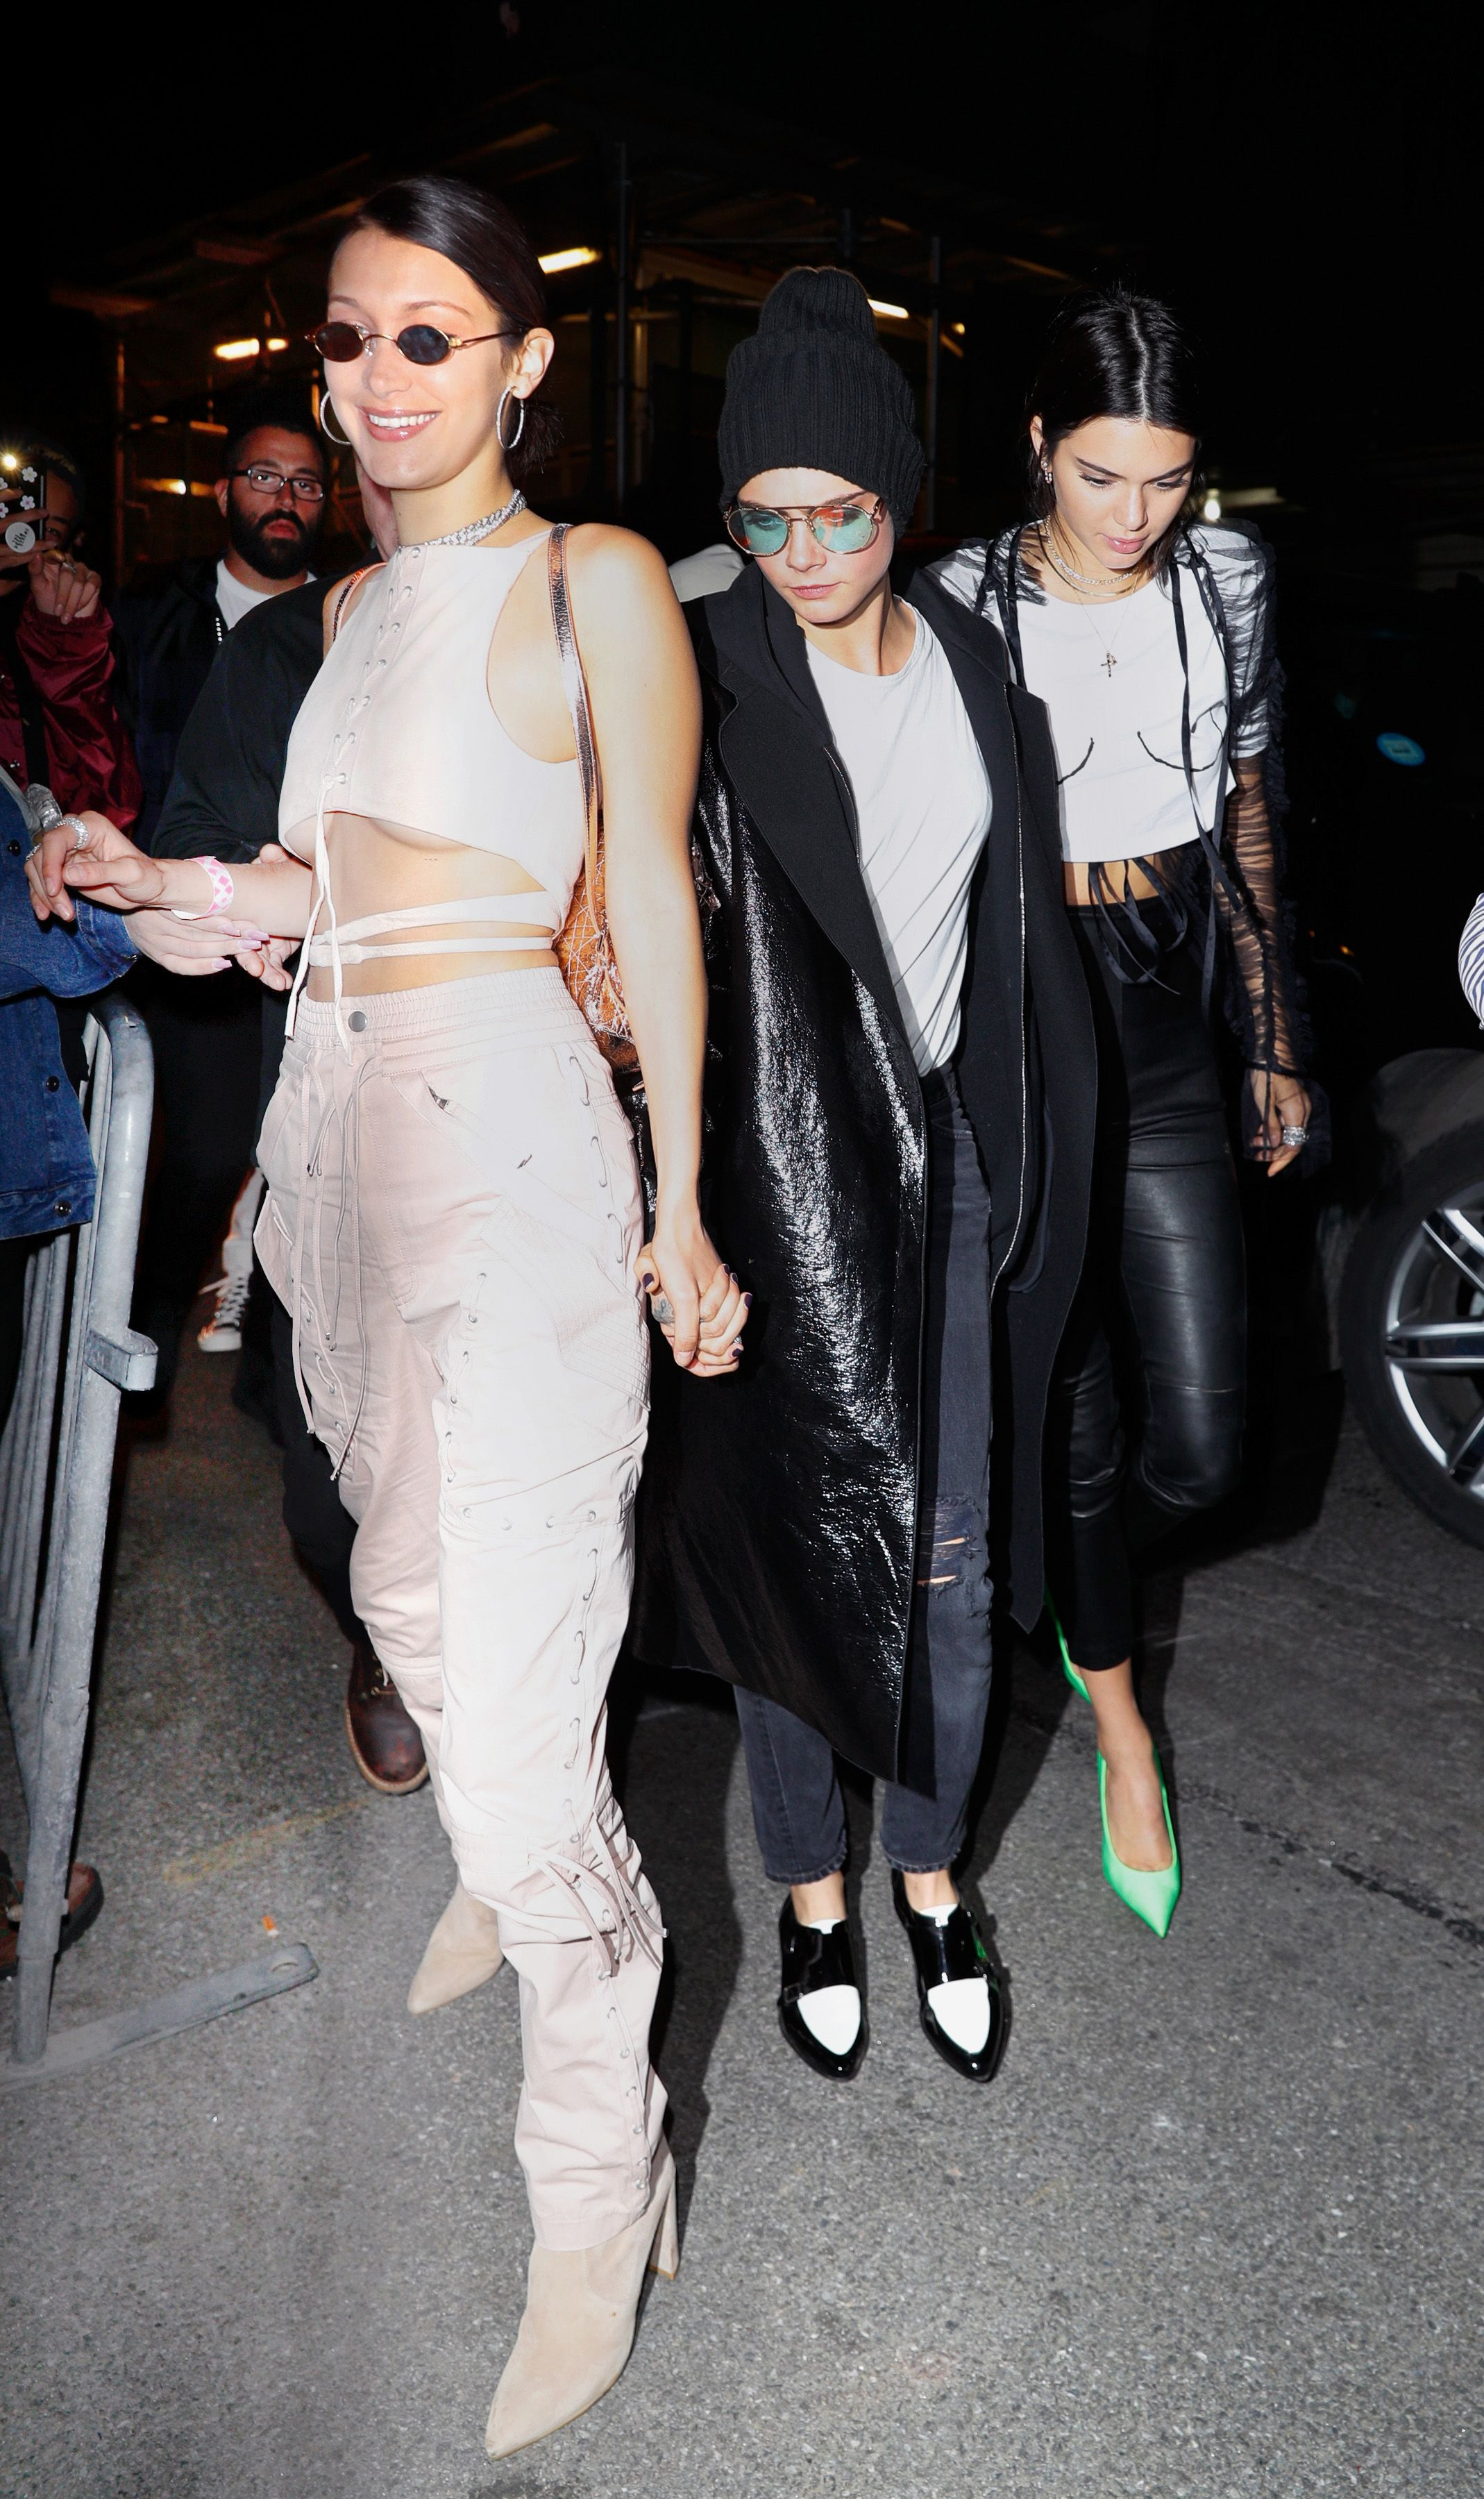 e79d2c4ae5189 Kylie Jenner and Friends at Travis Scott Birthday Photos - Bella ...